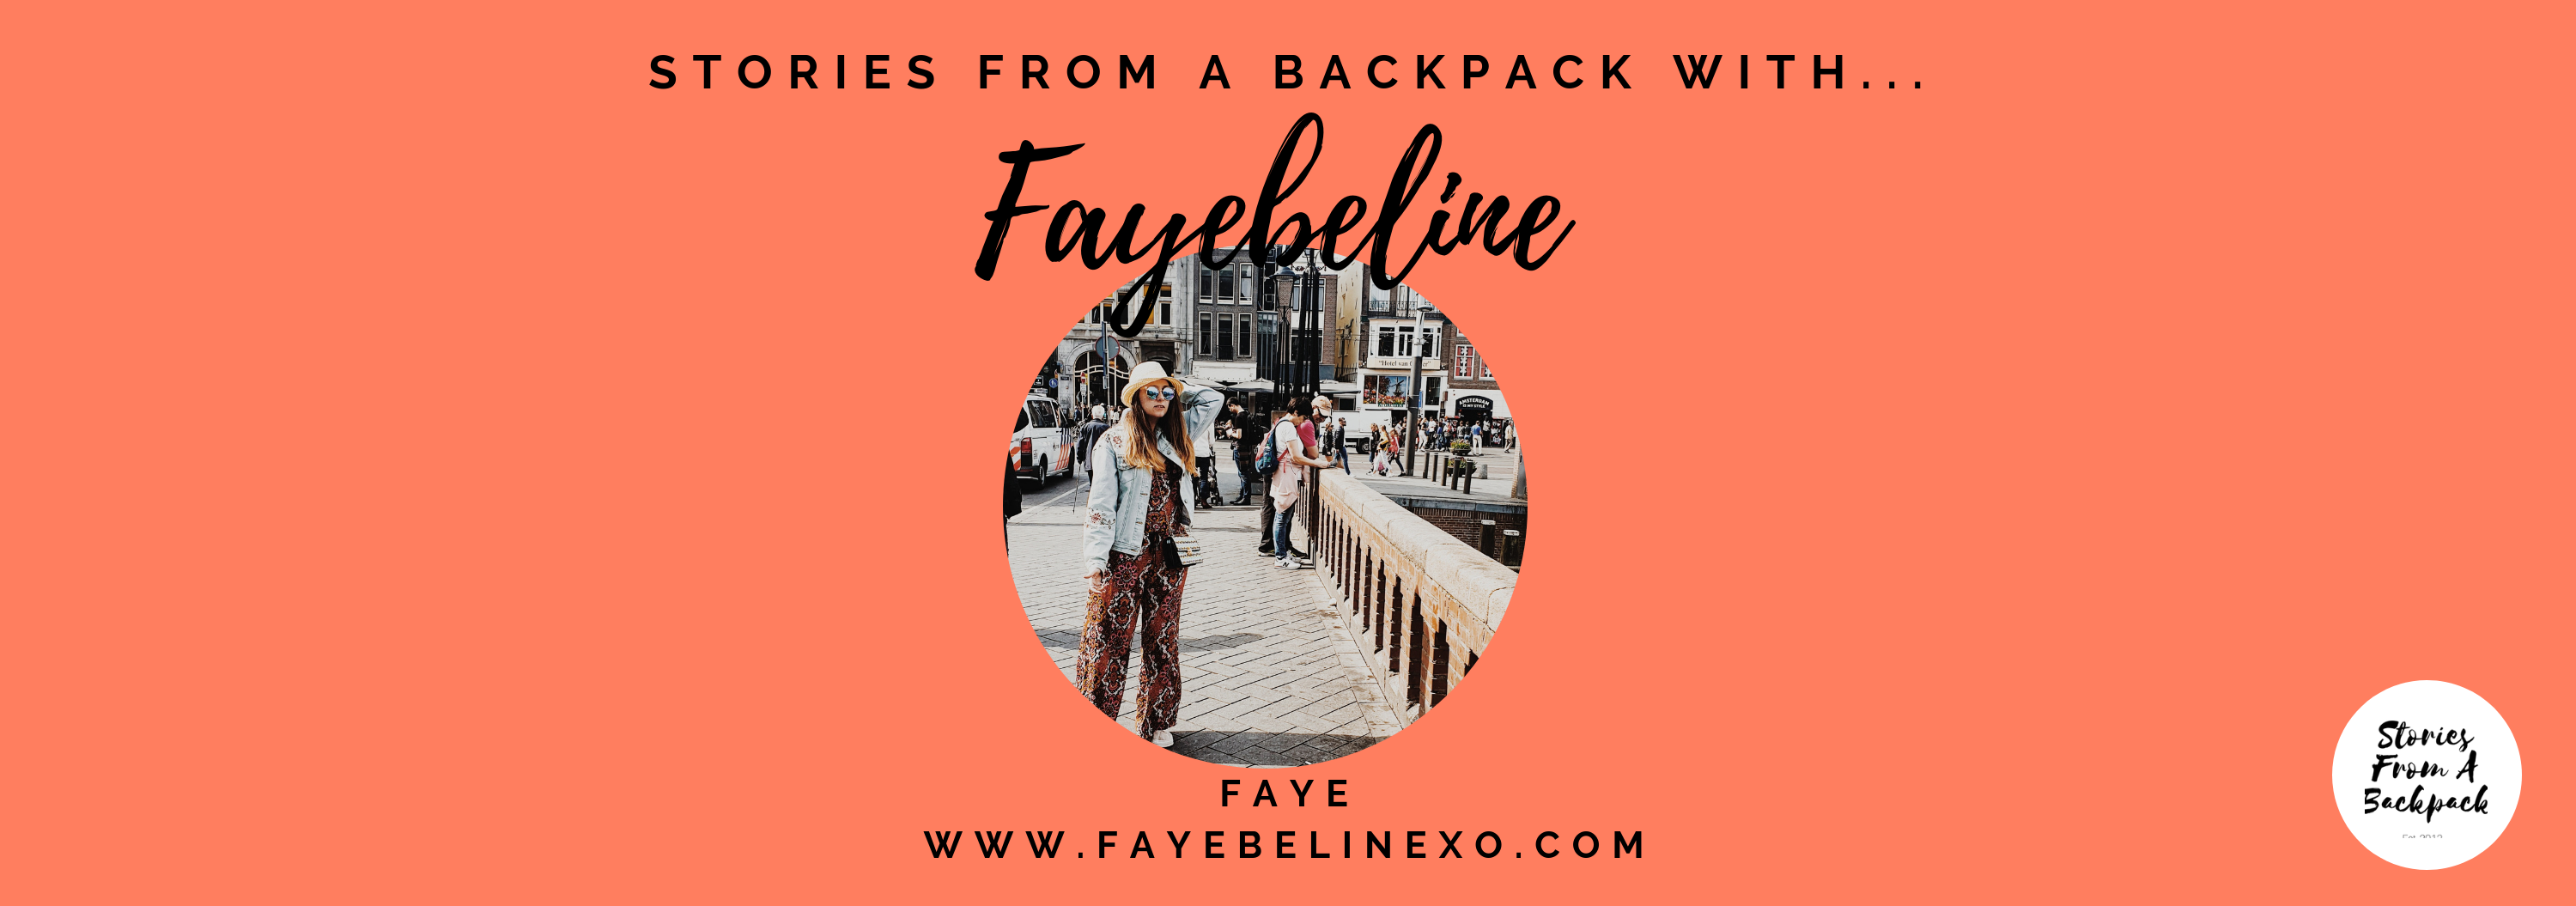 Stories with Fayebeline